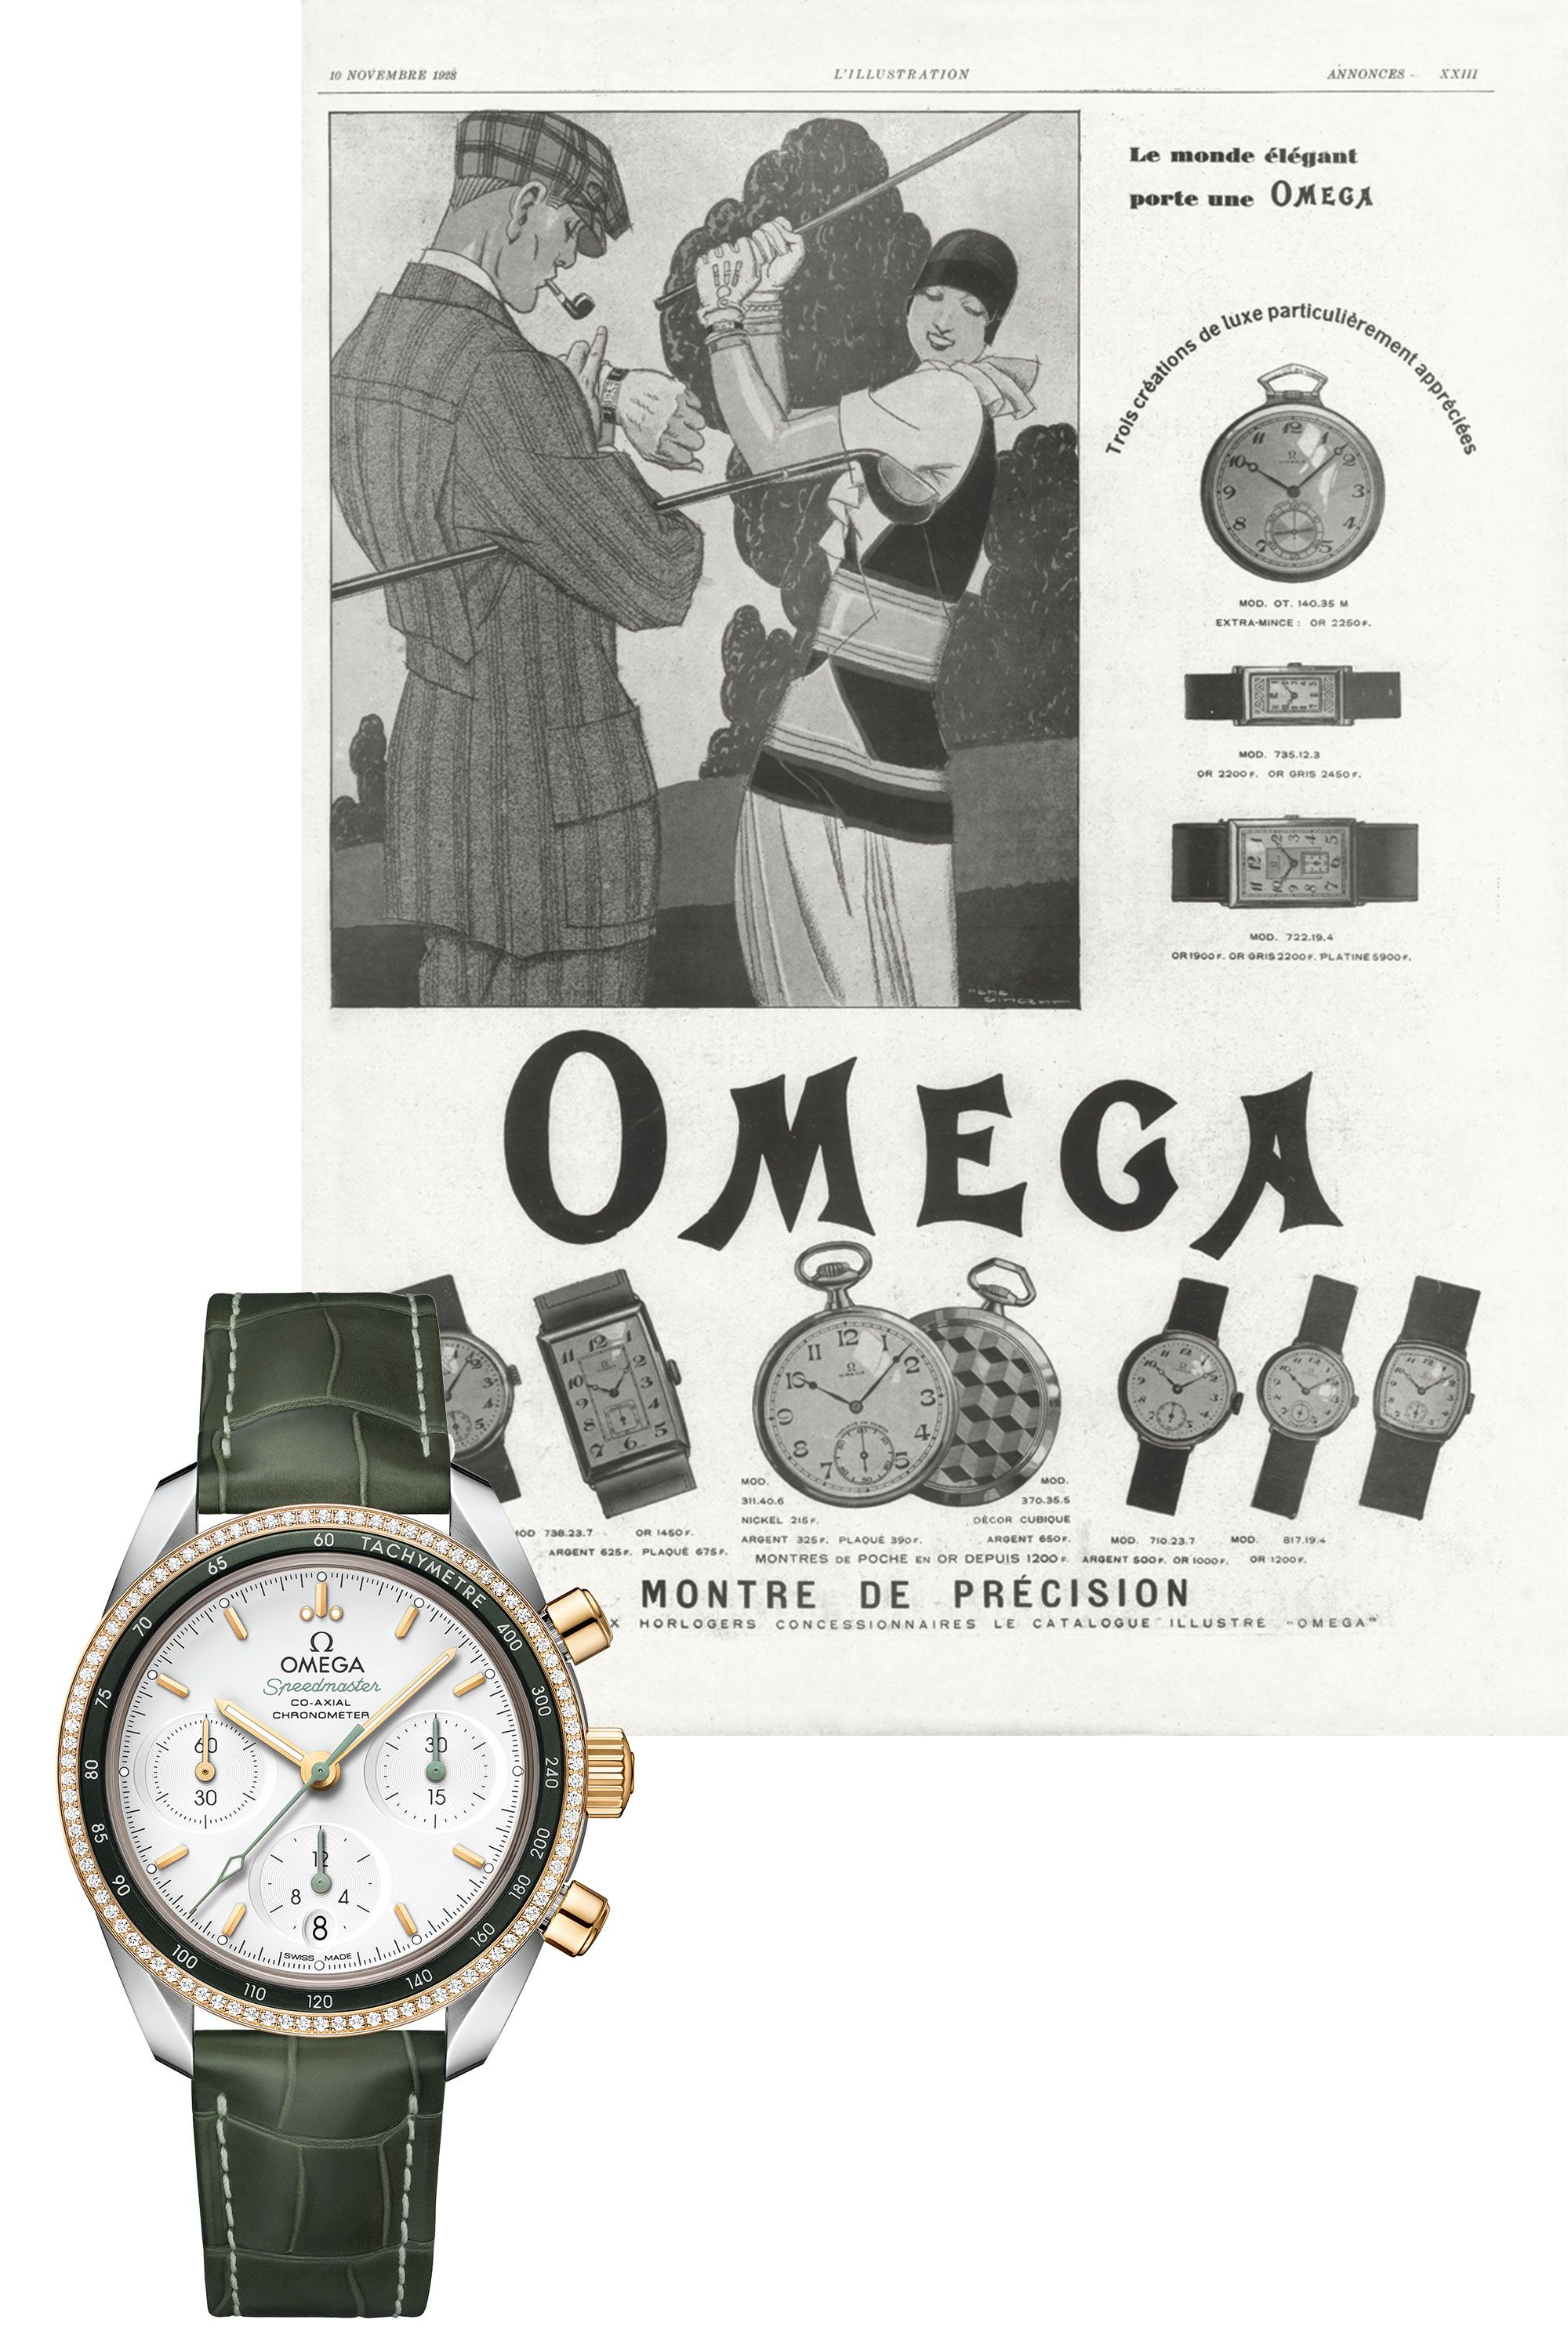 "<p>From Victorian-era pocket watches to Speedmasters built for walking on the moon, Omega is steeped in history. Its modern mechanical ladies chronograph, made in 18K yellow gold with a green aluminum bezel and a heap of diamonds, is both edgy and everyday wearable. Green is the new neutral, after all.</p><p><em data-redactor-tag=""em"" data-verified=""redactor""> Speedmaster 38 Co- Axial Chronograph, $9,300; </em><a href=""https://www.omegawatches.com/watches/speedmaster/speedmaster-38mm/co-axial-chronograph-38-mm/32428385002001/"" target=""_blank"" data-tracking-id=""recirc-text-link""><em data-redactor-tag=""em"" data-verified=""redactor"">omega.com</em></a></p>"